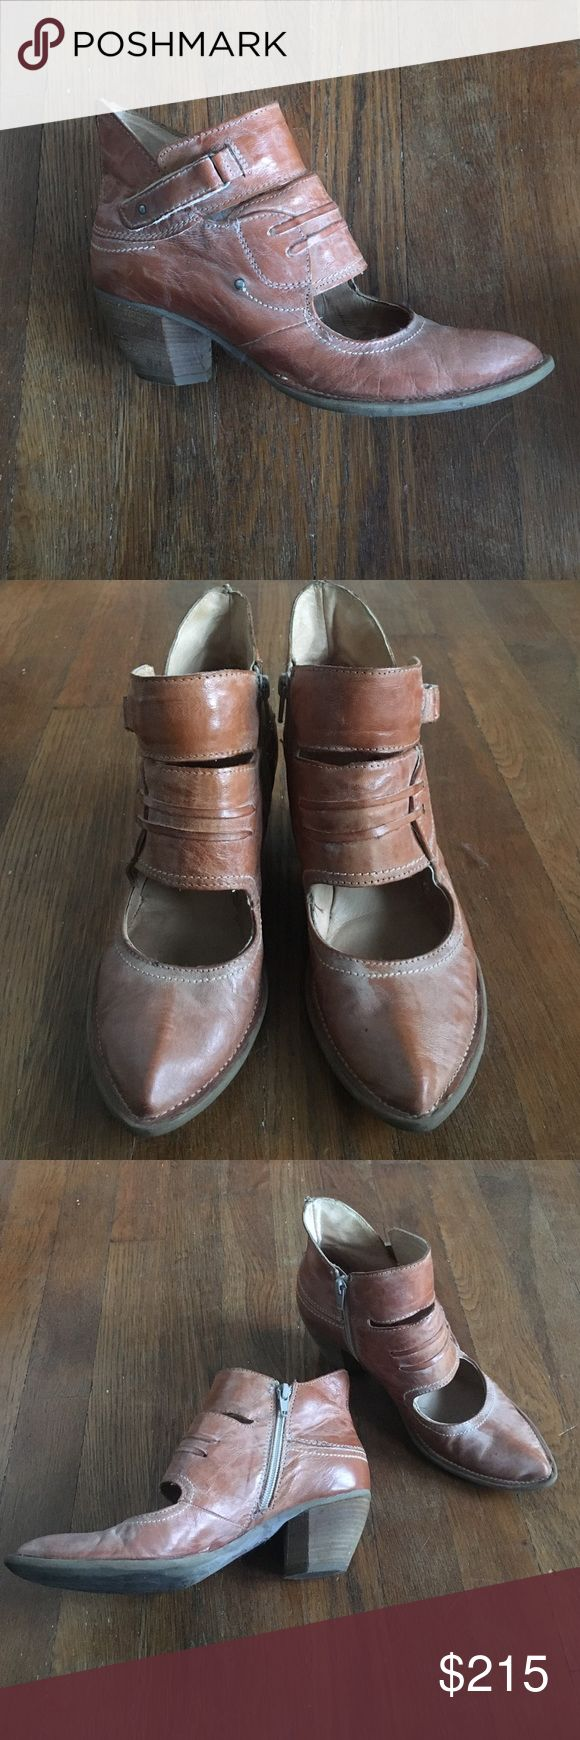 Anthropologie Vera Pelle Khrio tan leather boots Vera Pelle Khrio tan leather heeled boots. Size 38. Worn a handful of times but in really great condition. Zipper sides. Pointy toe. Vera Pelle Shoes Heeled Boots